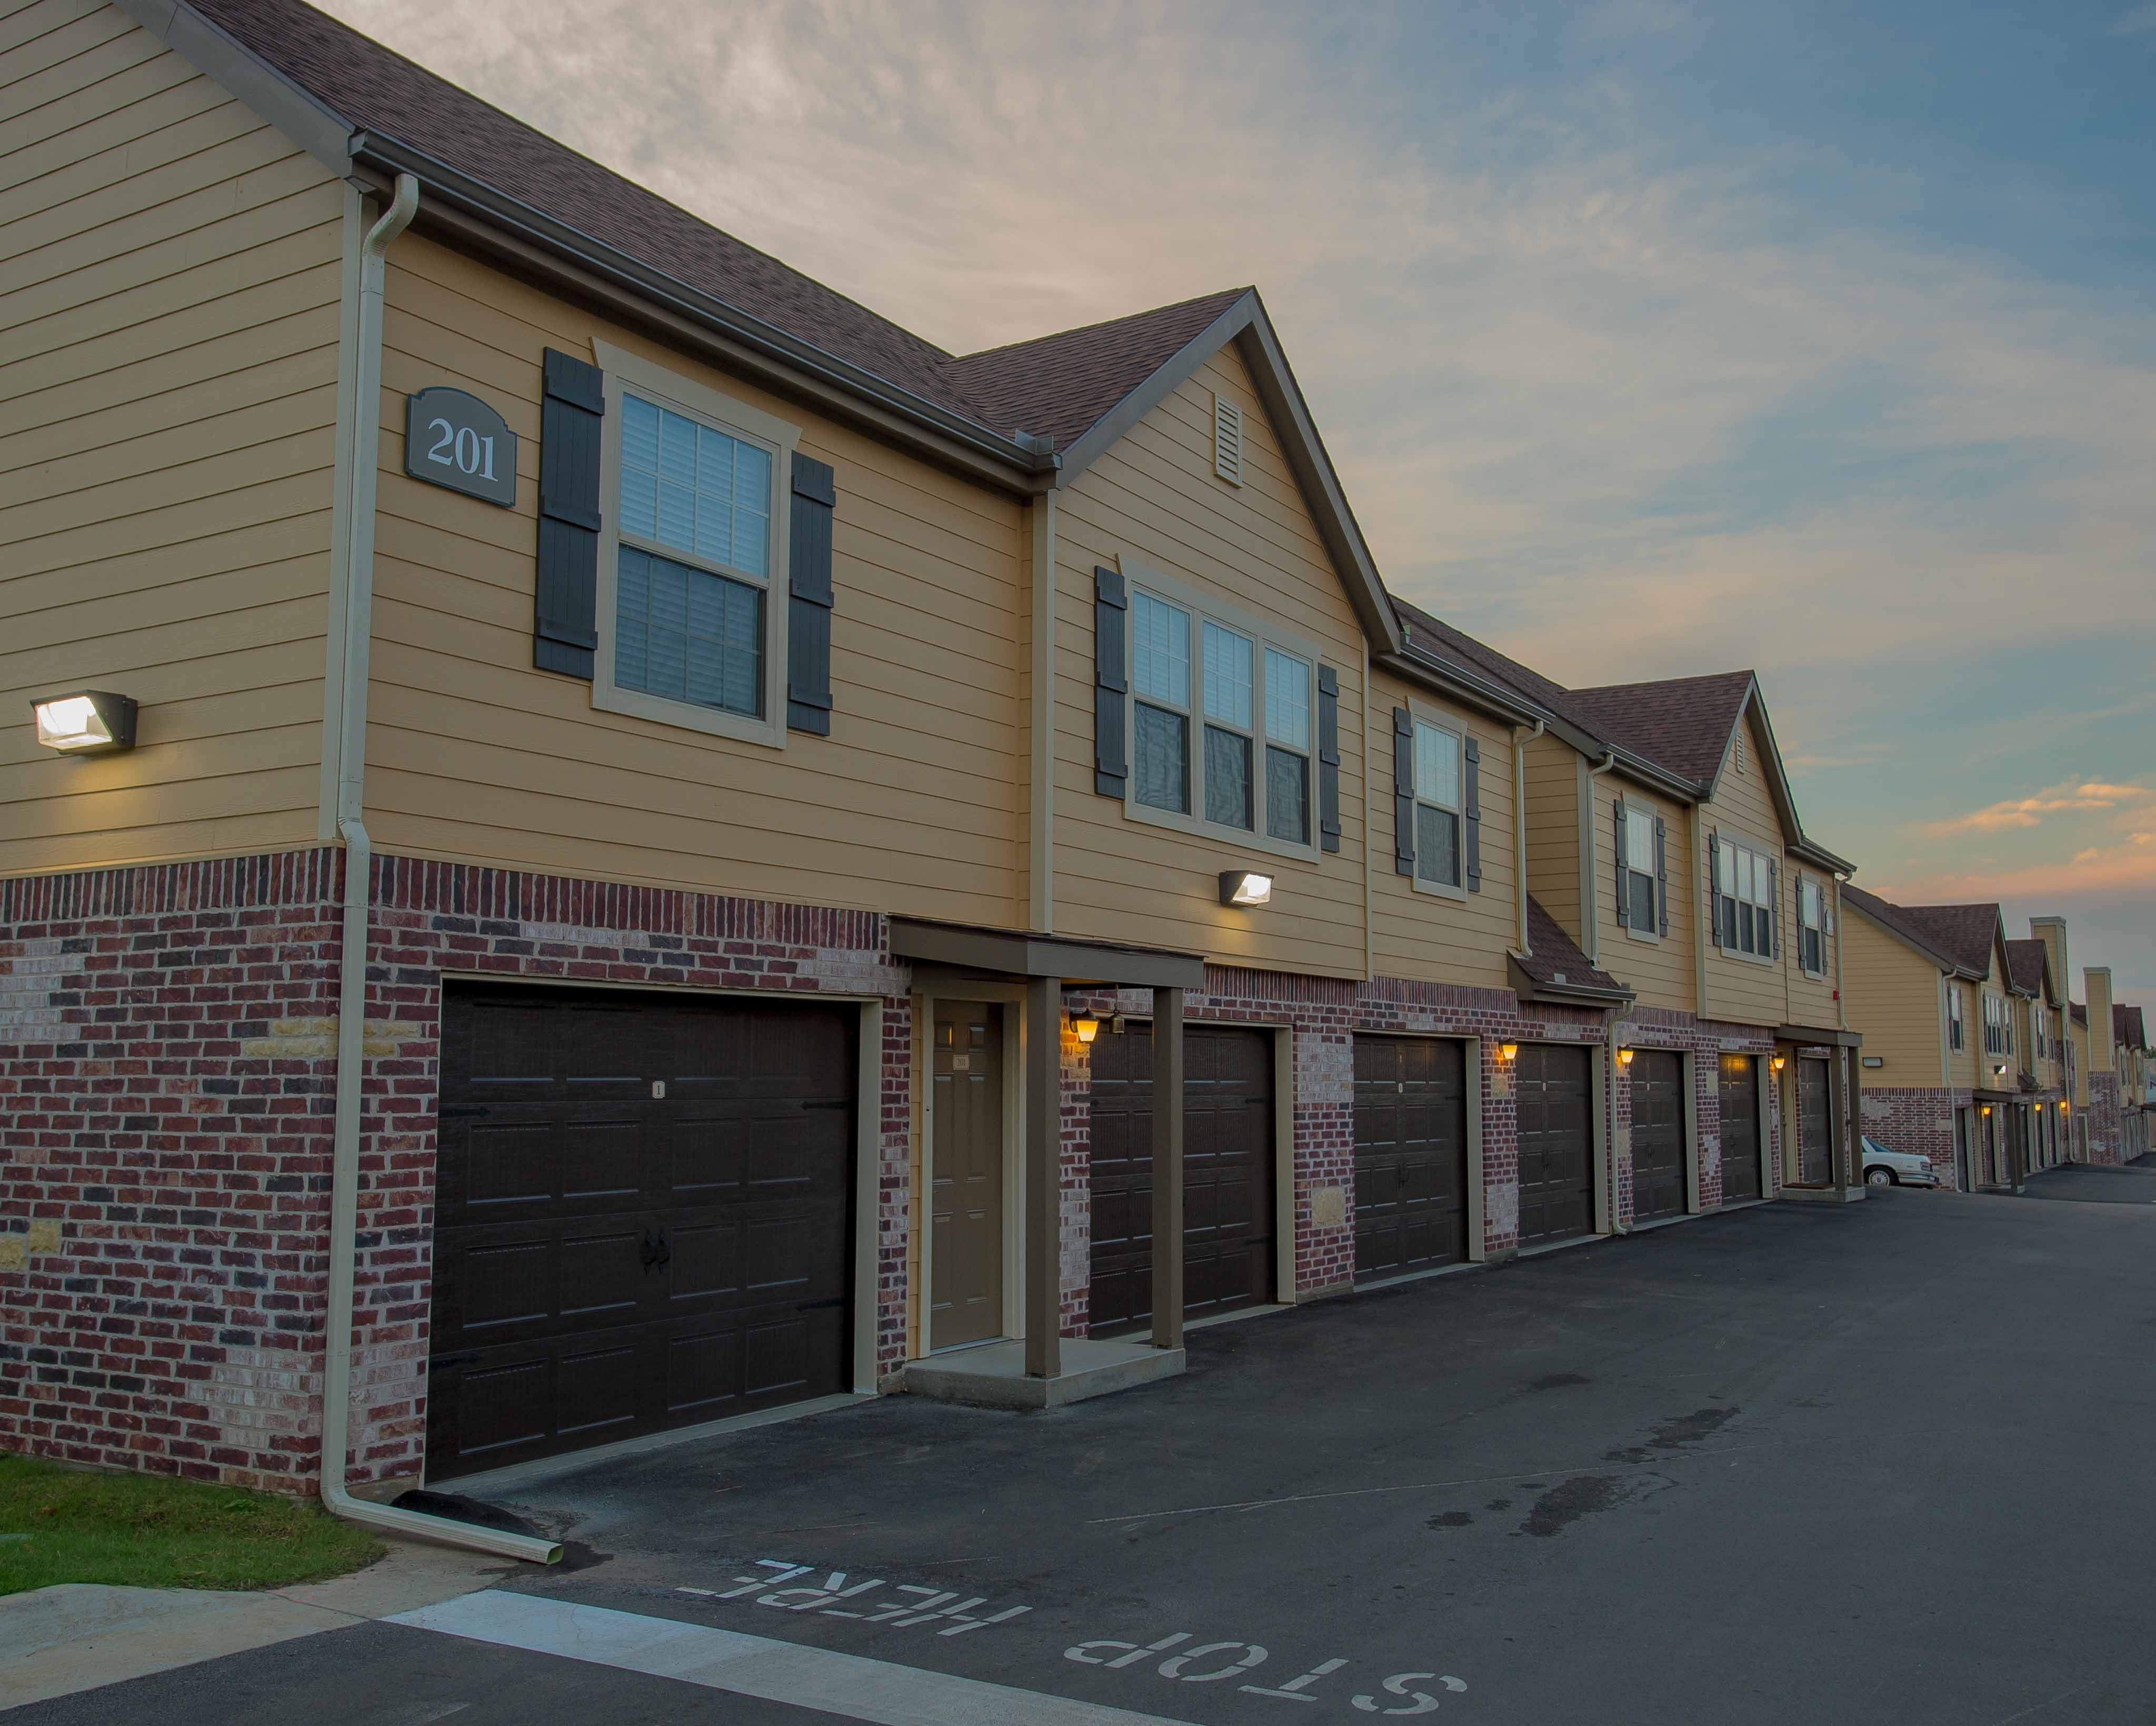 Garage parking in Watercress Apartments in Maize